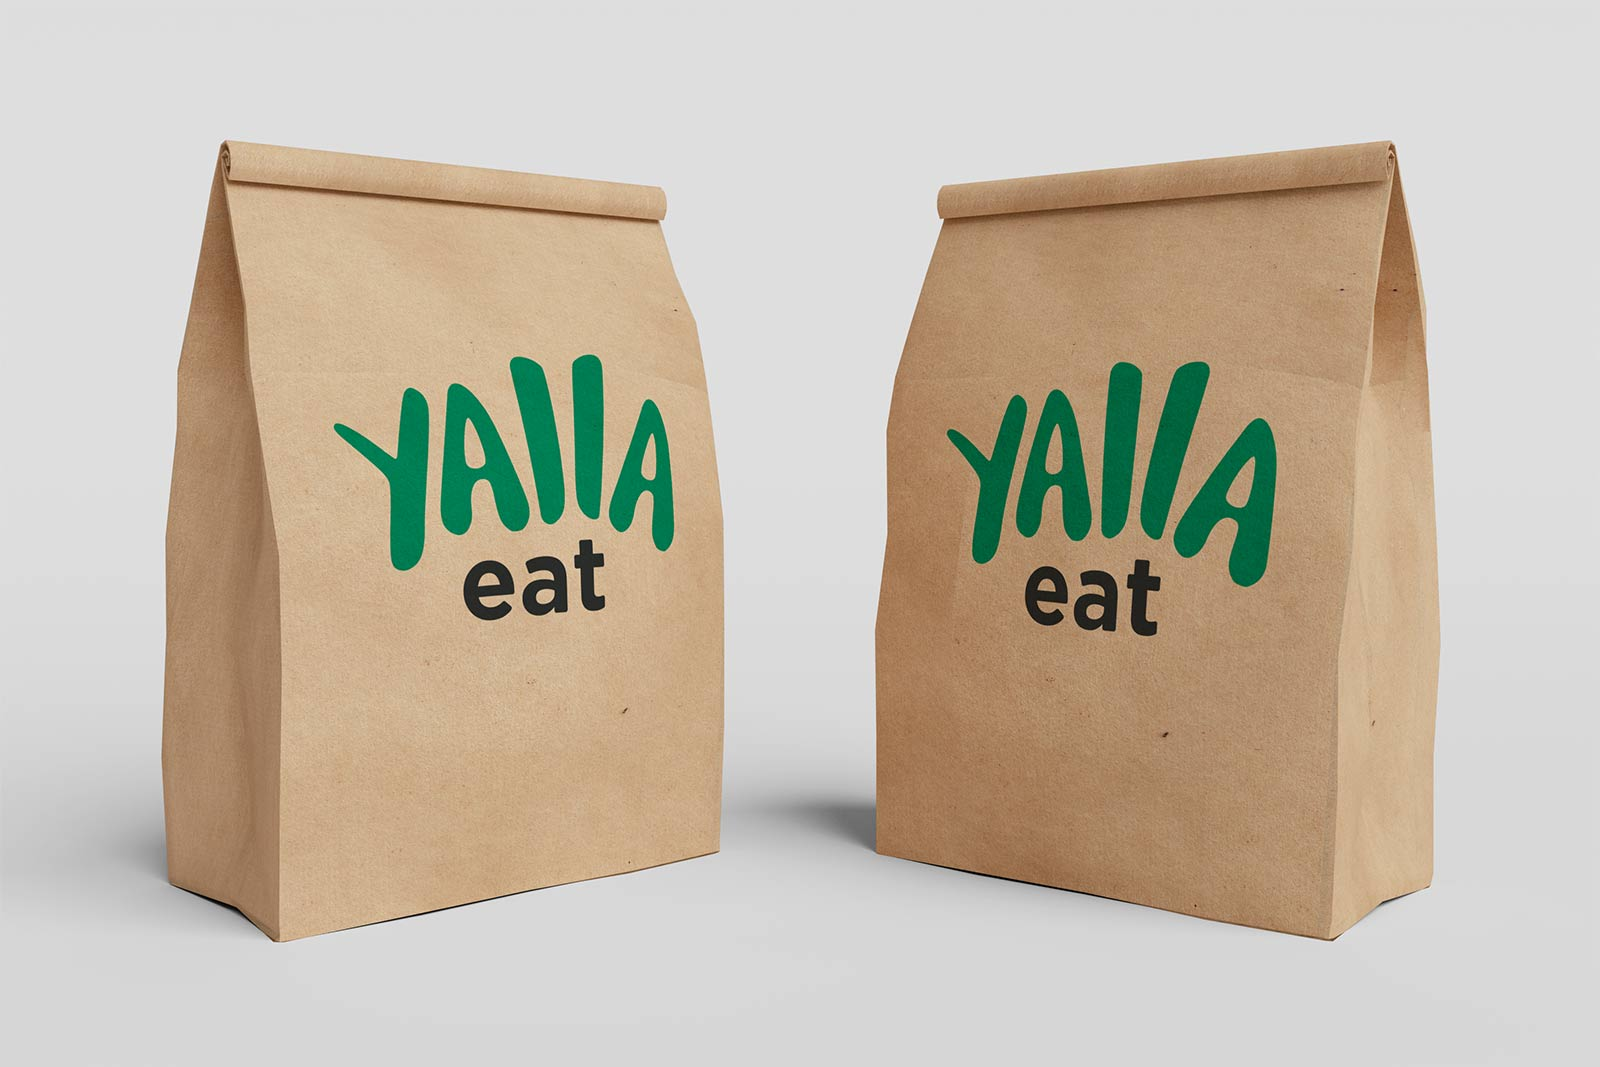 Yalla Eat Branded Paper Delivery Bag Mockup